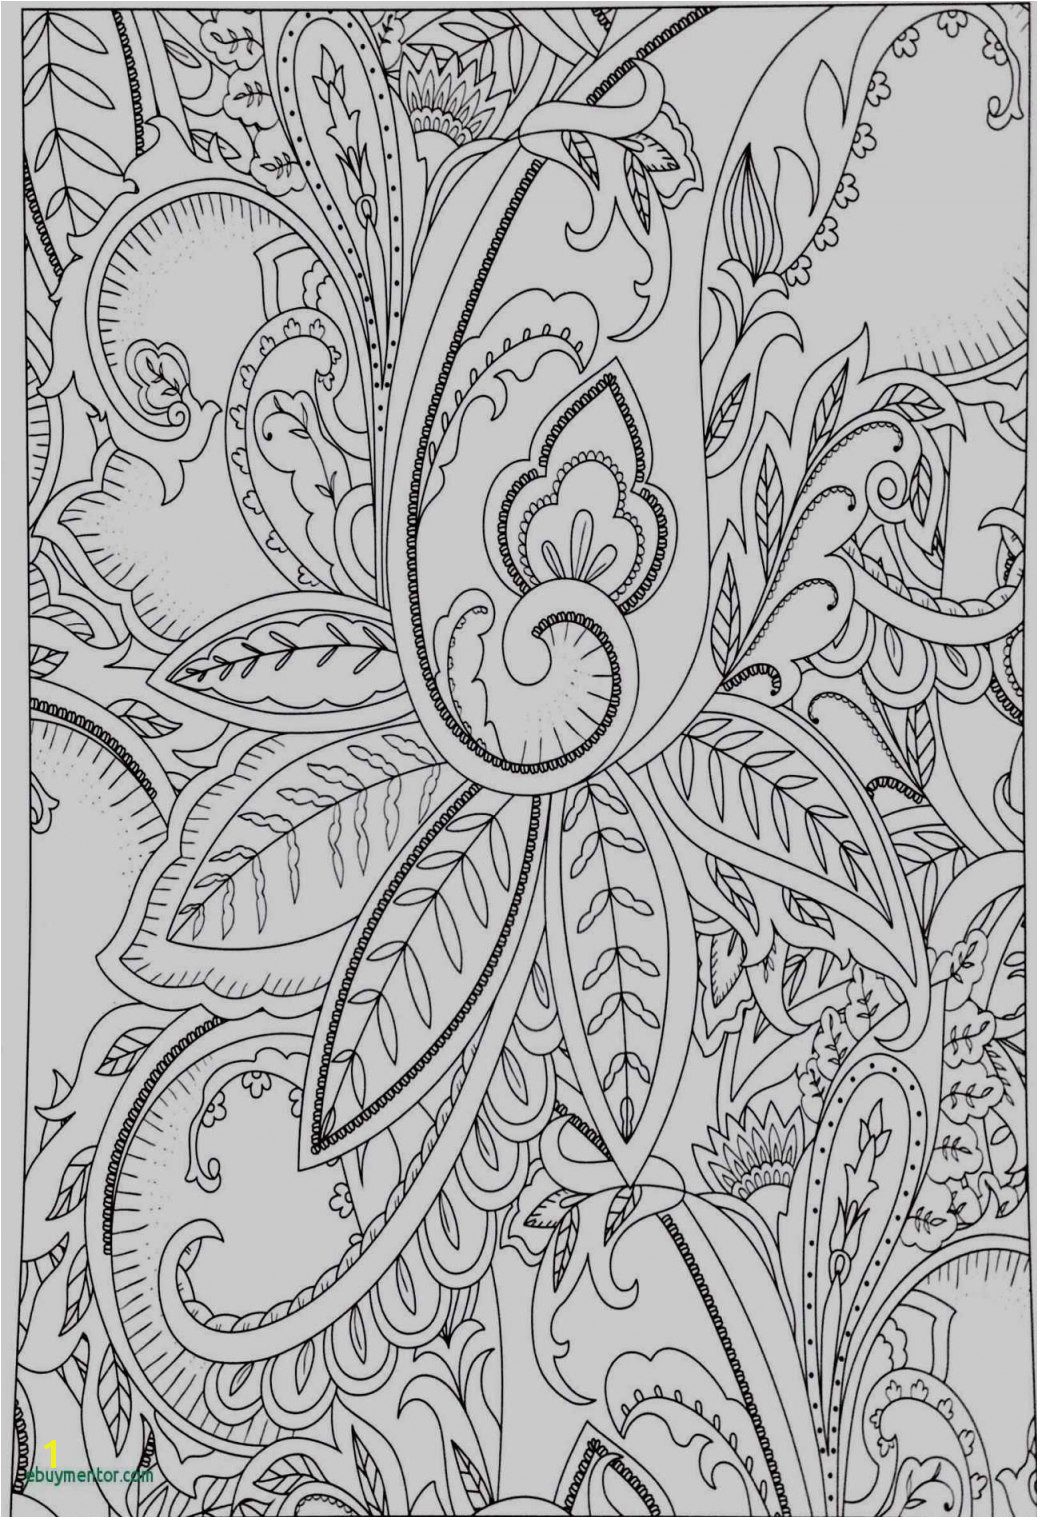 Christmas Coloring Book Pages for Adults Free Christmas Coloring Pages for Adults Cool Coloring Printables 0d